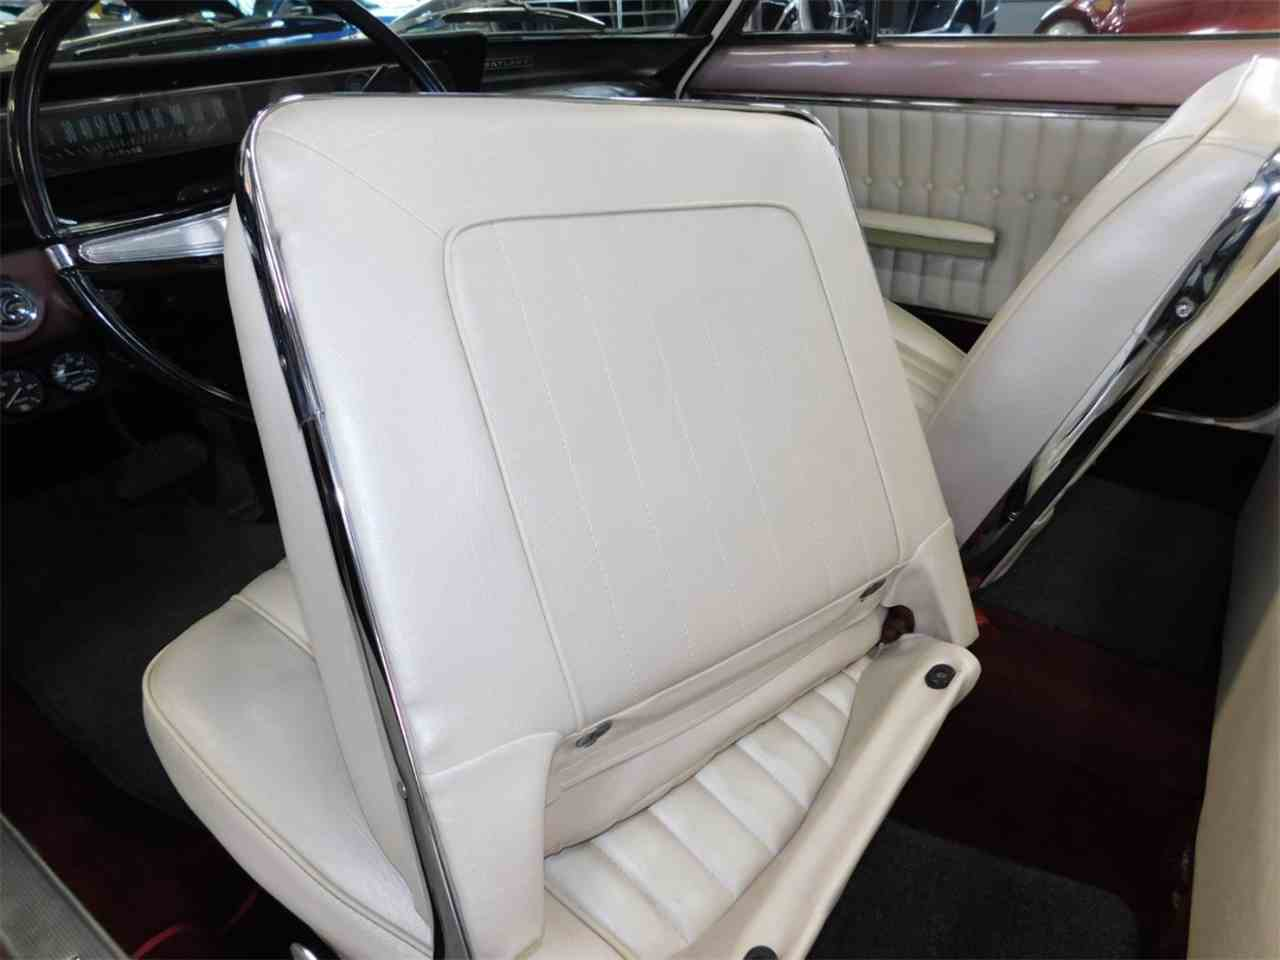 Large Picture of 1963 Buick Skylark located in Bend Oregon - $17,500.00 - LUNB